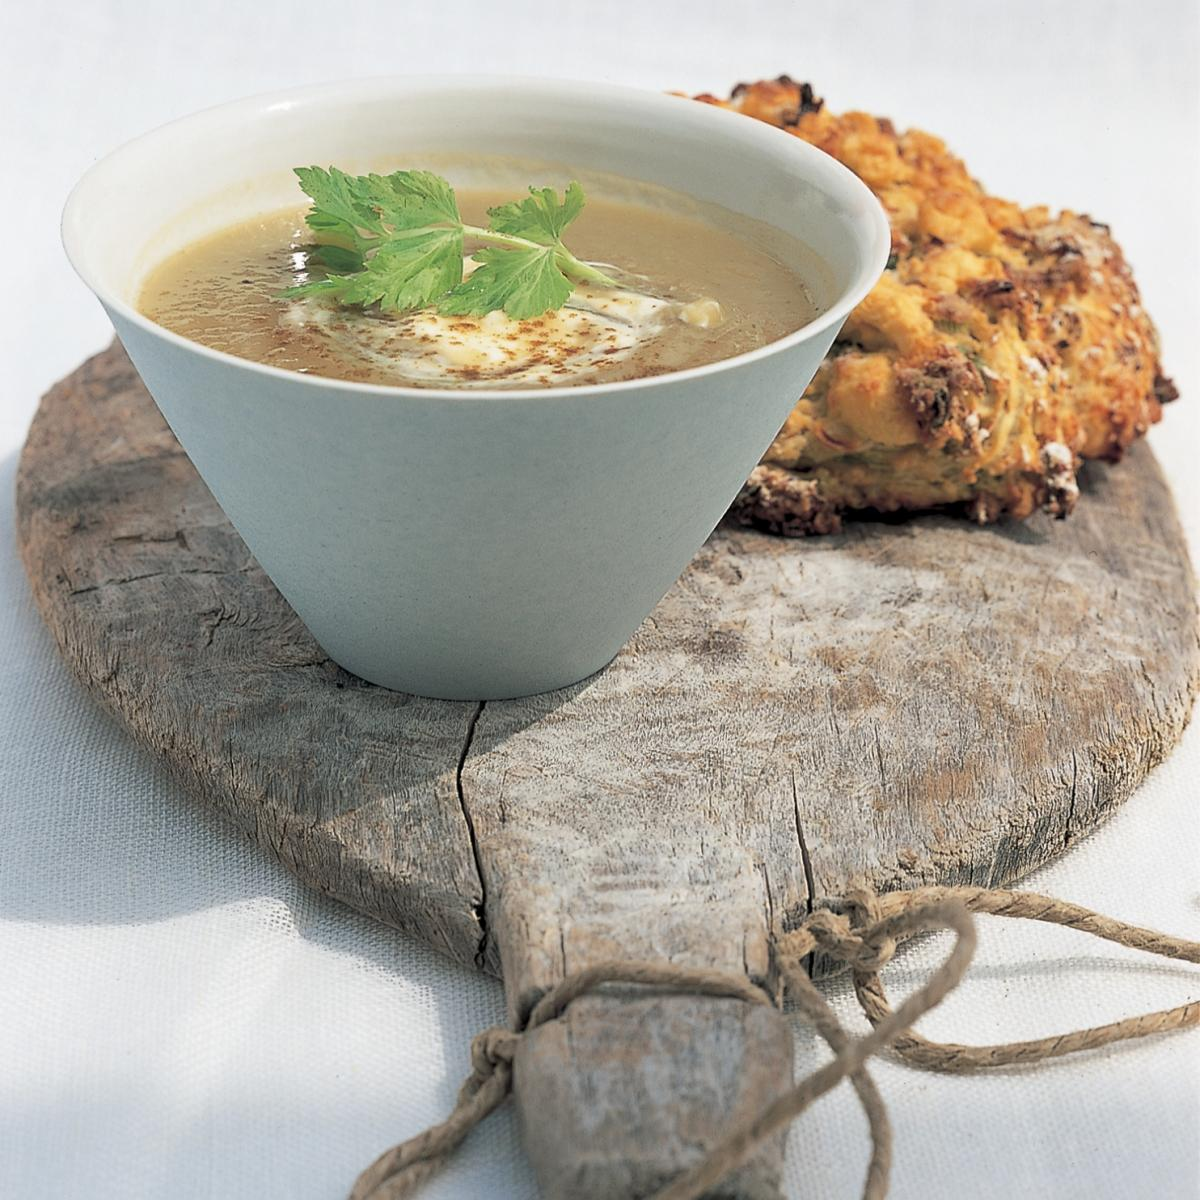 A picture of Delia's Slow-cooked Celery and Celeriac Soup recipe